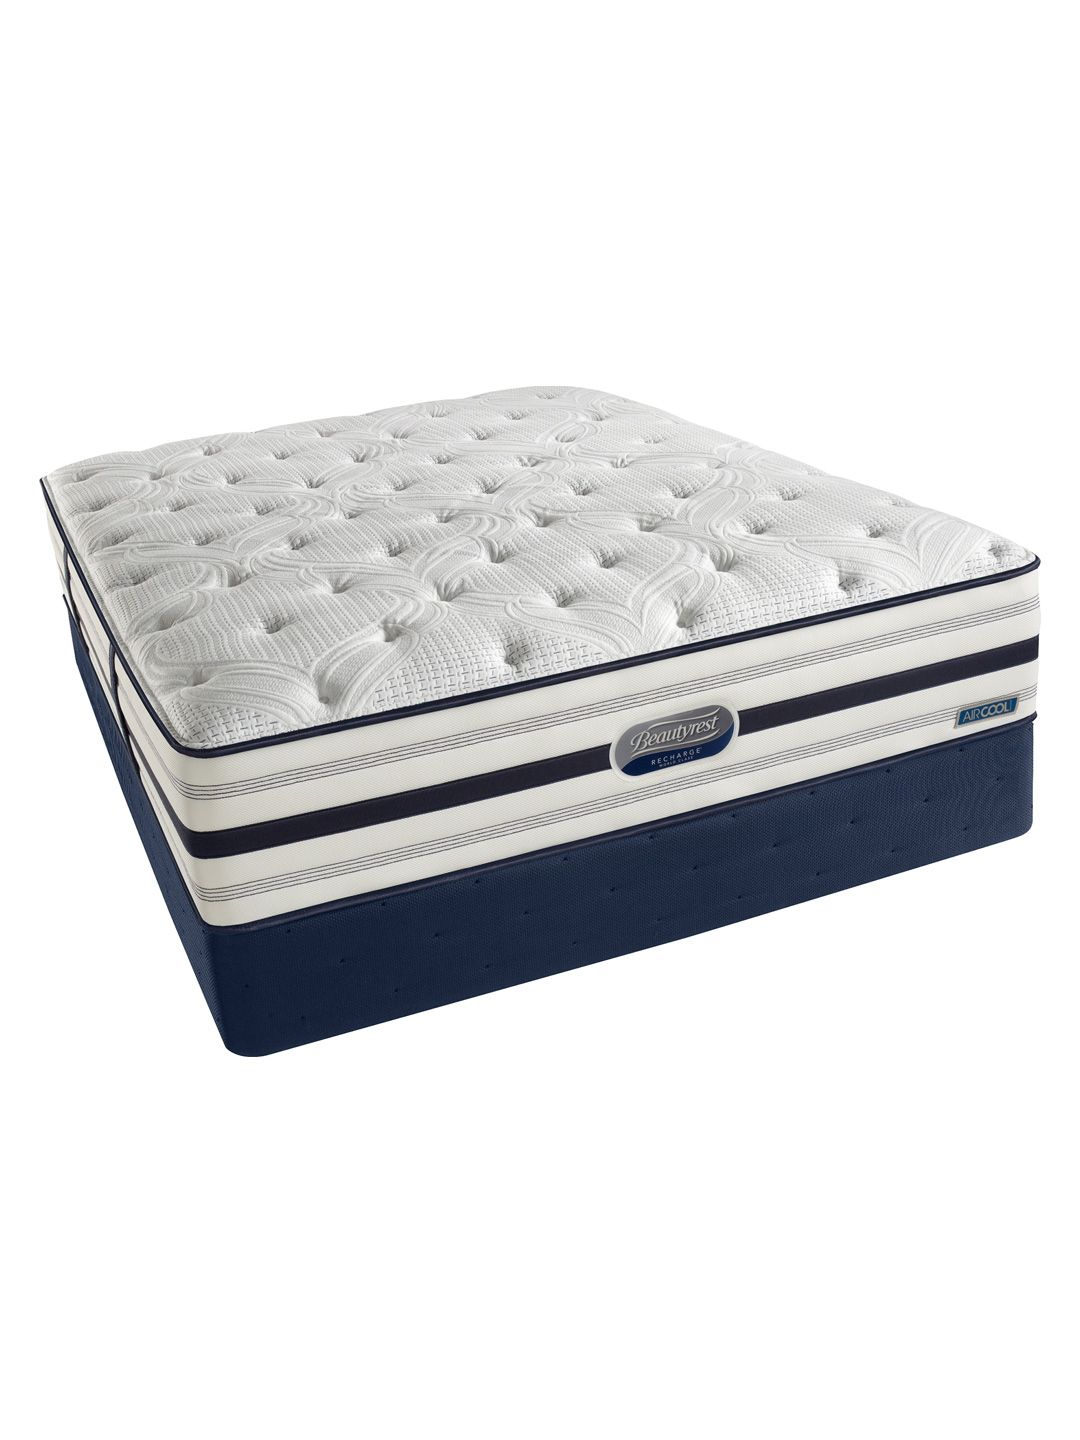 world class recharge plush mattress set home furniture pinterest